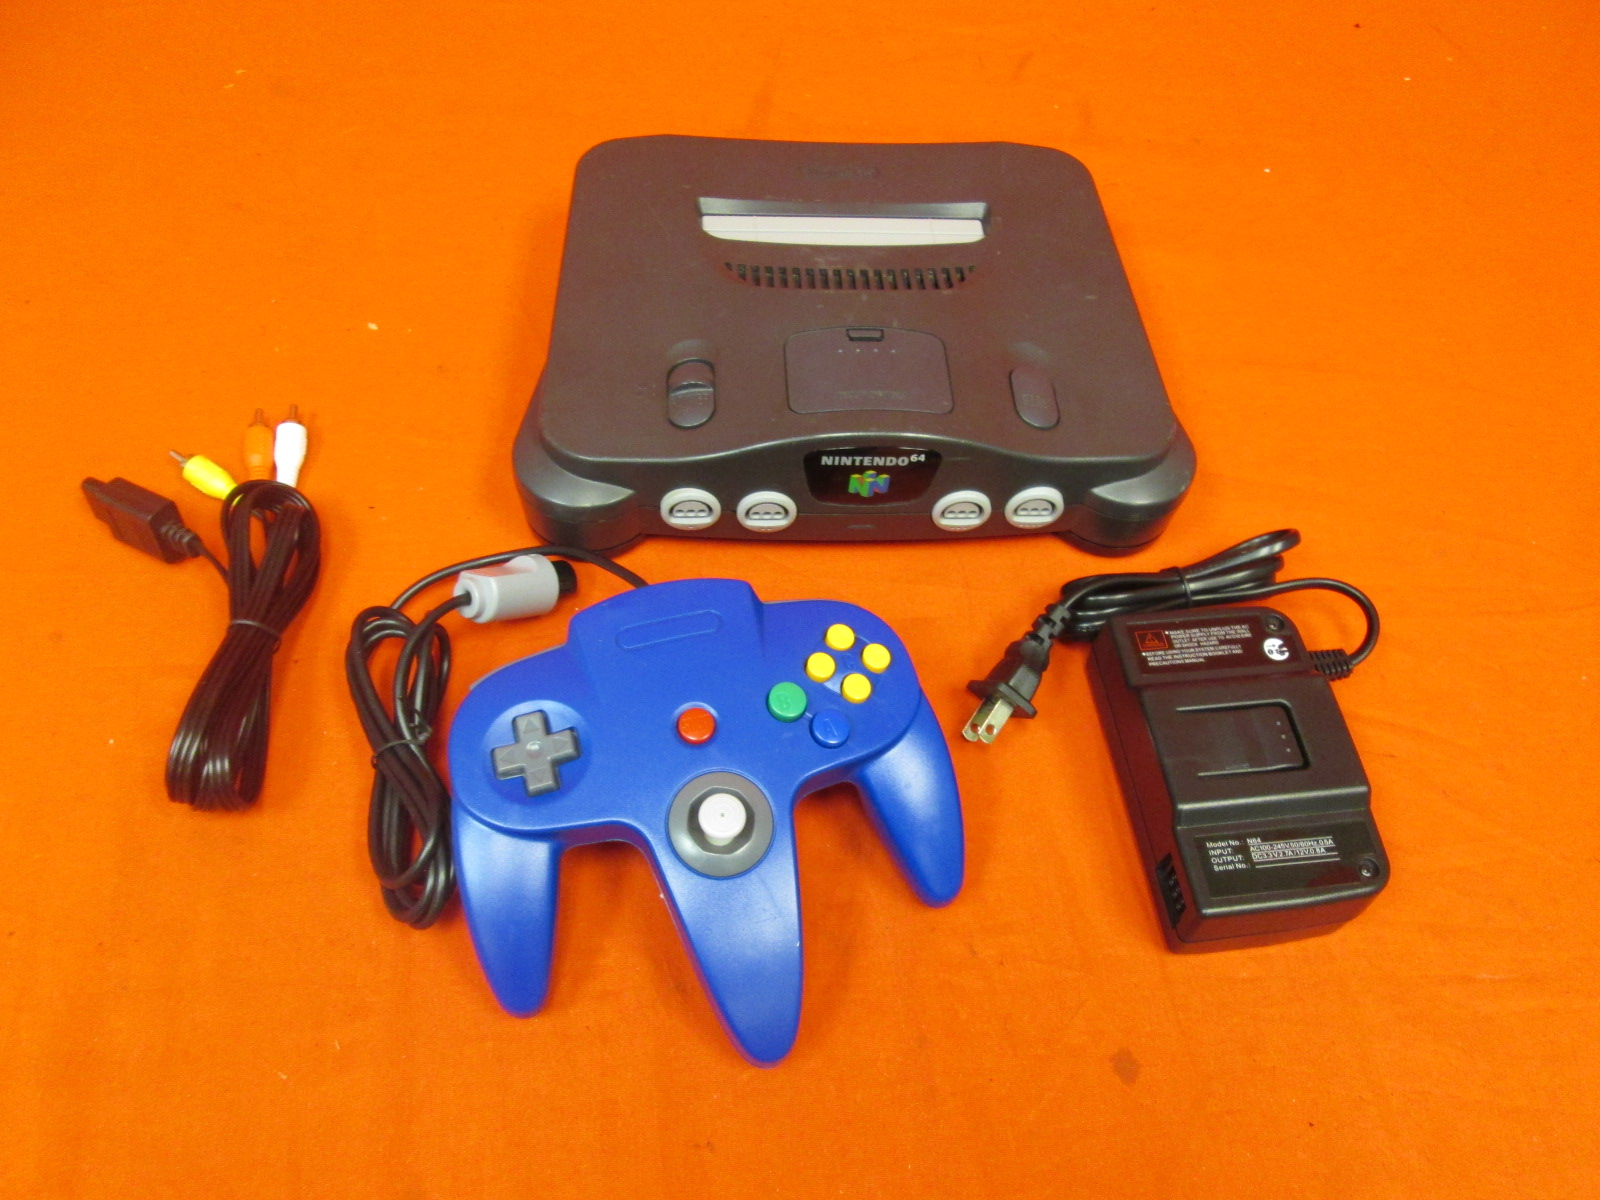 Nintendo N64 Video Game Console With Controller